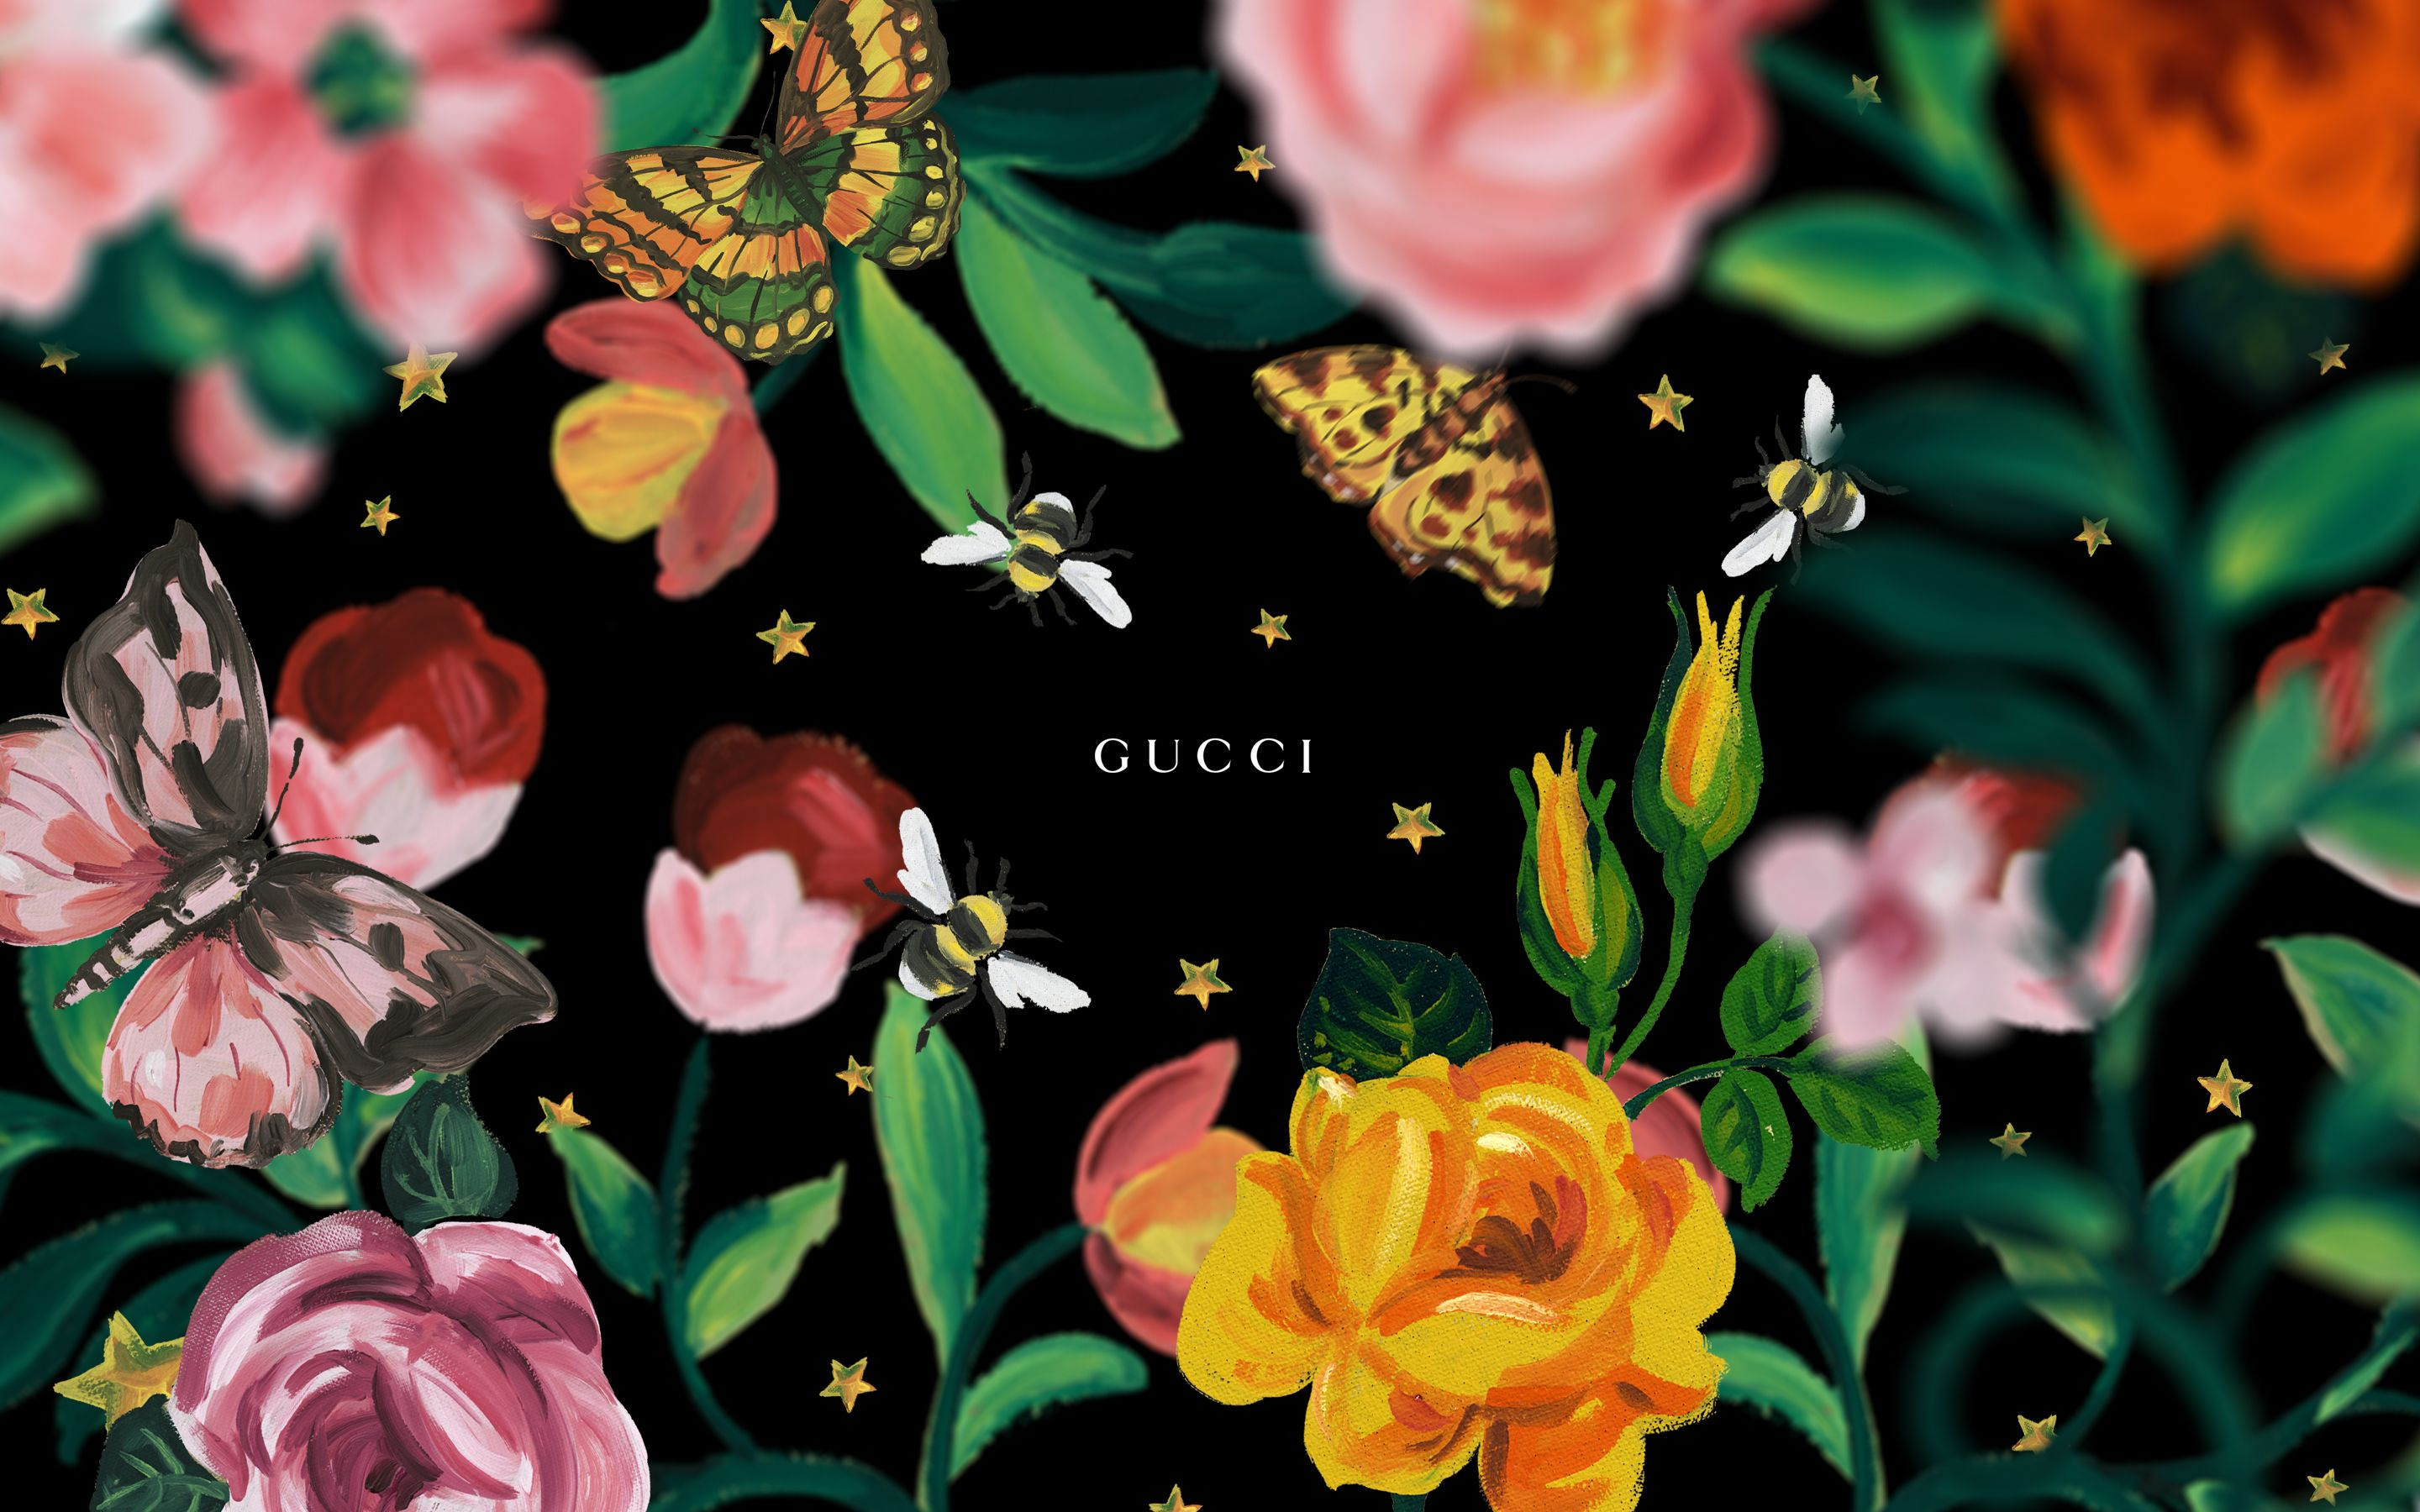 Gucci Laptop Wallpapers , Top Free Gucci Laptop Backgrounds